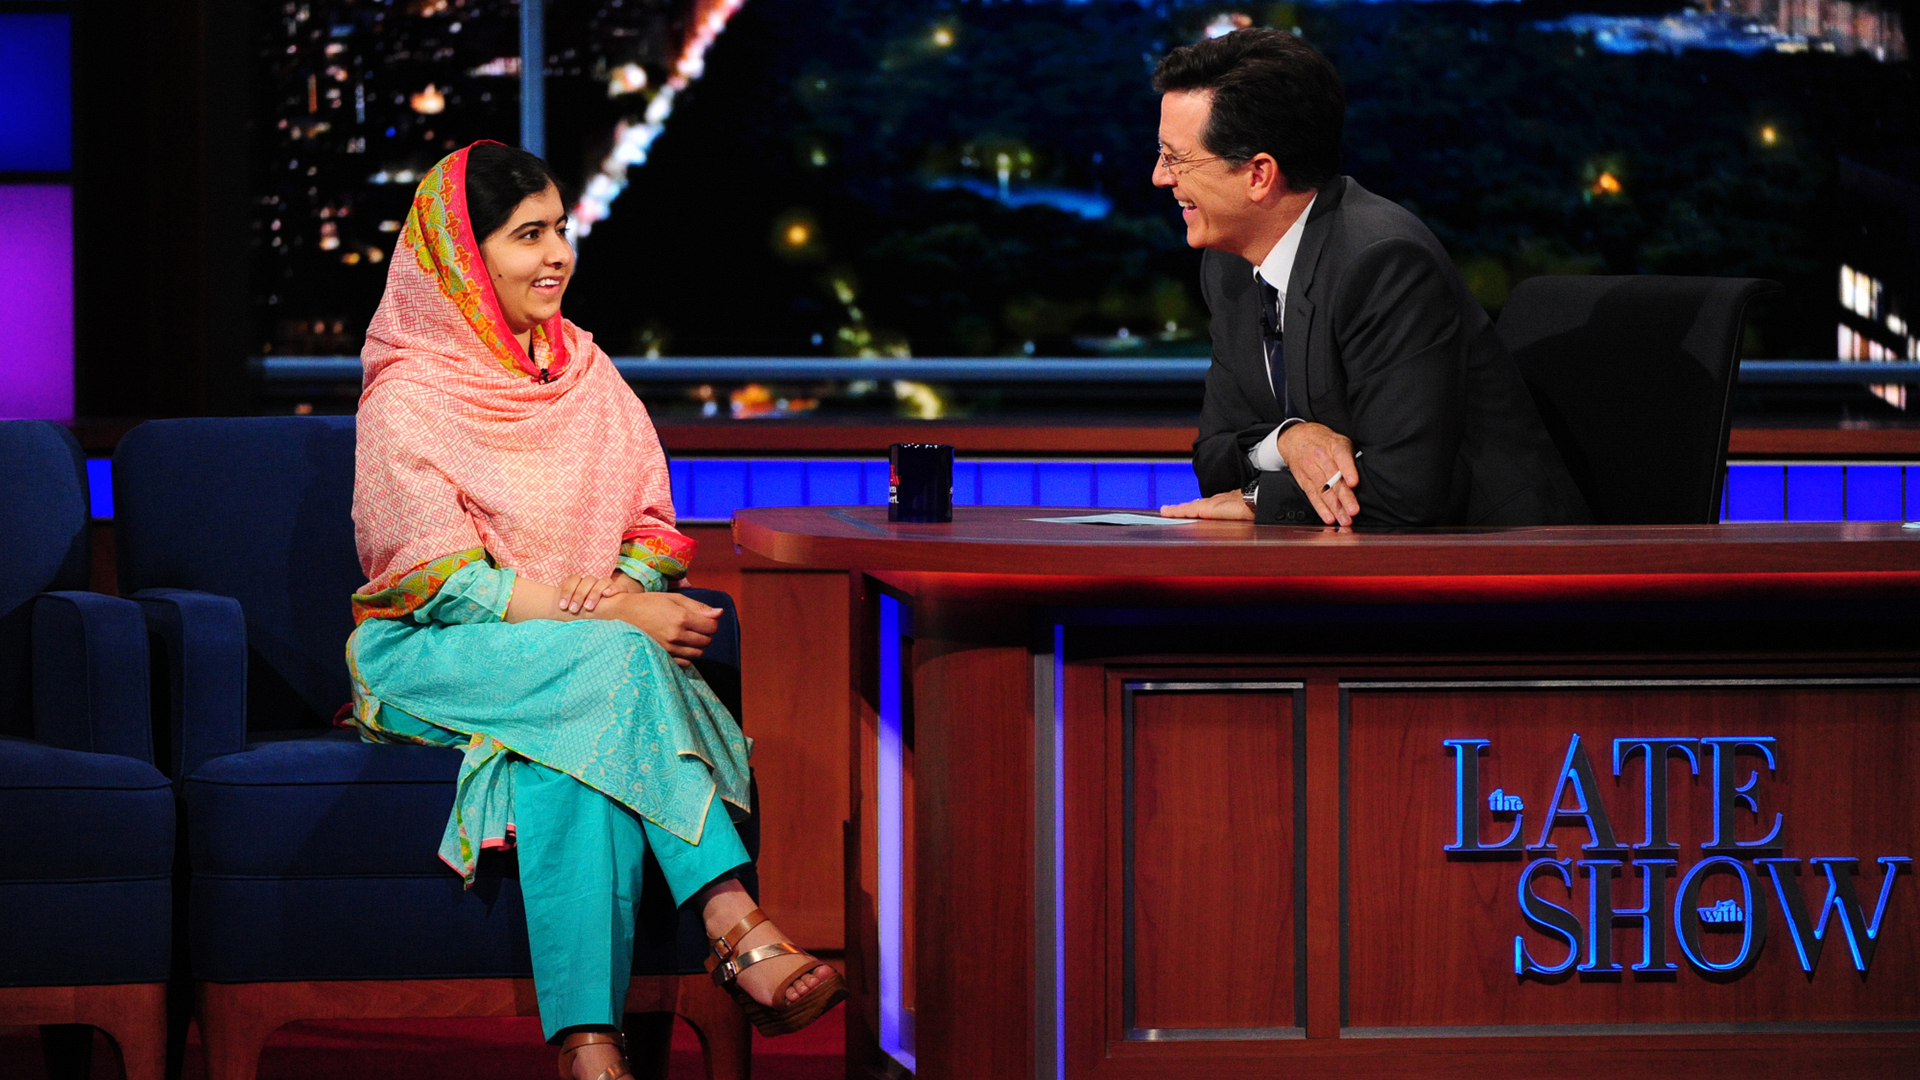 Malala Yousafzai and Stephen Colbert